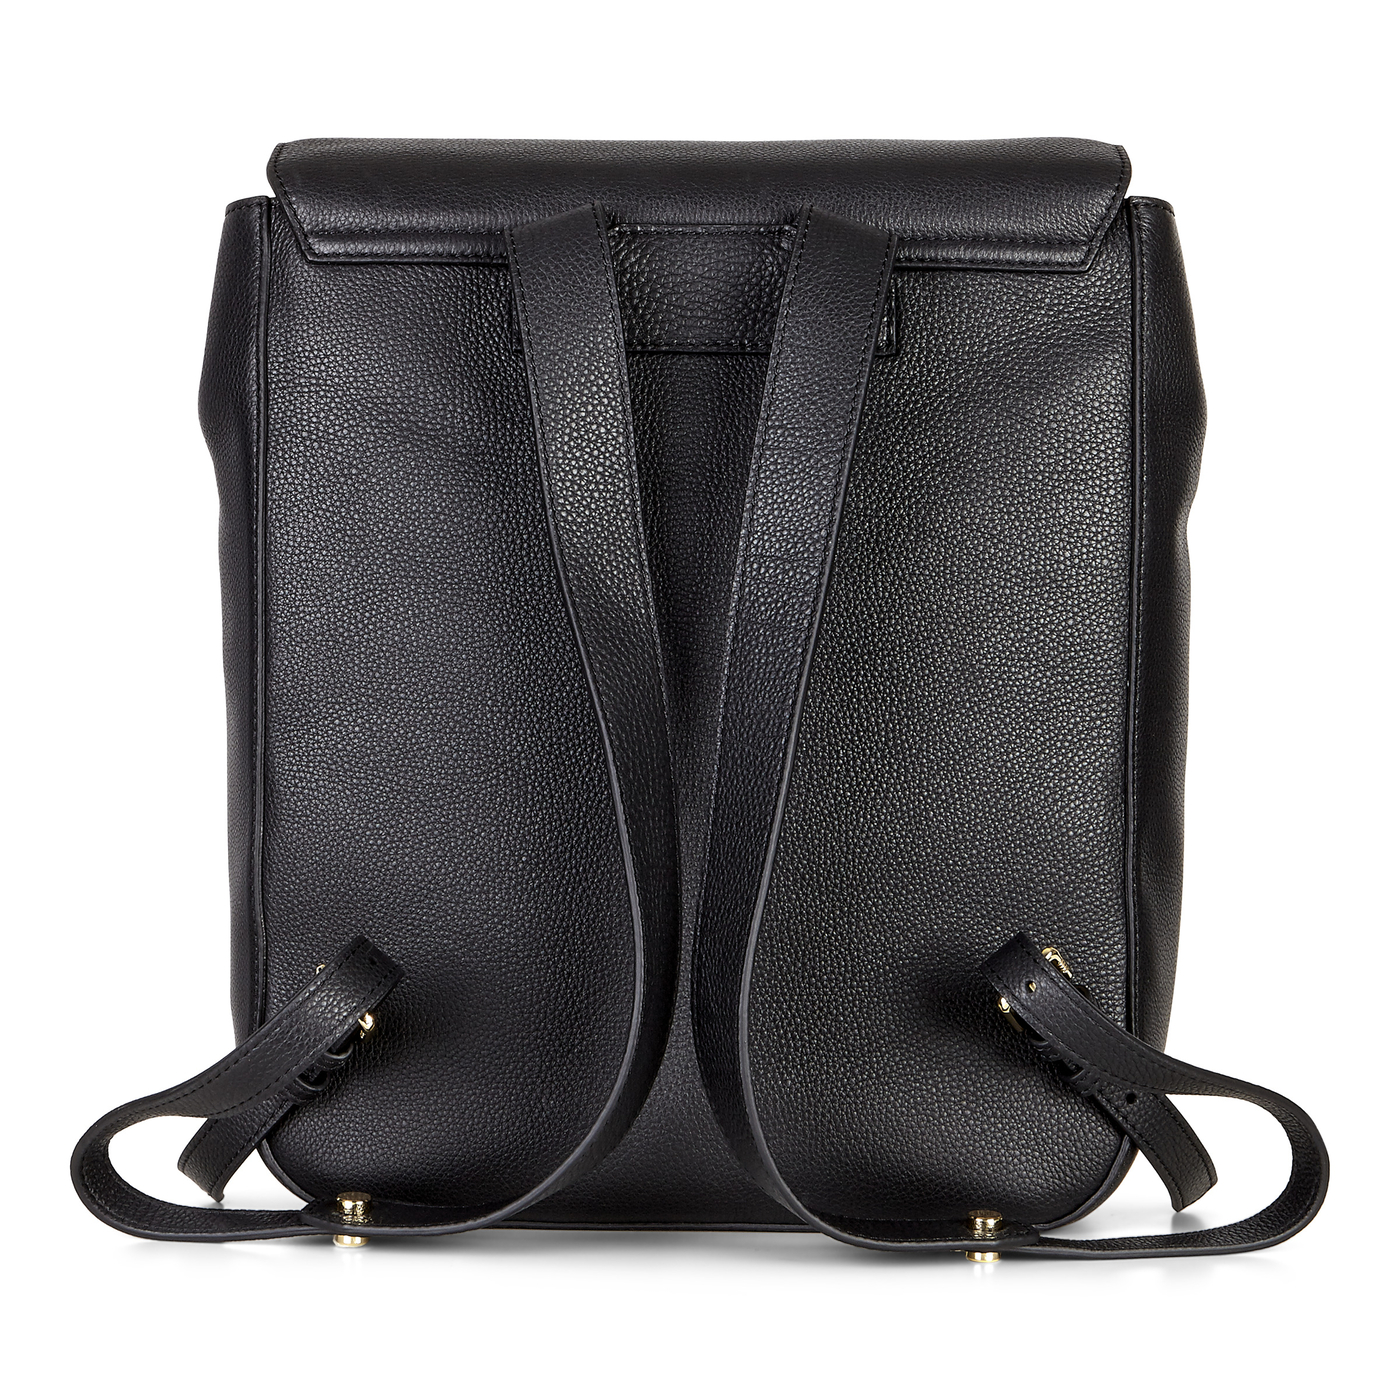 ECCO Kauai Backpack